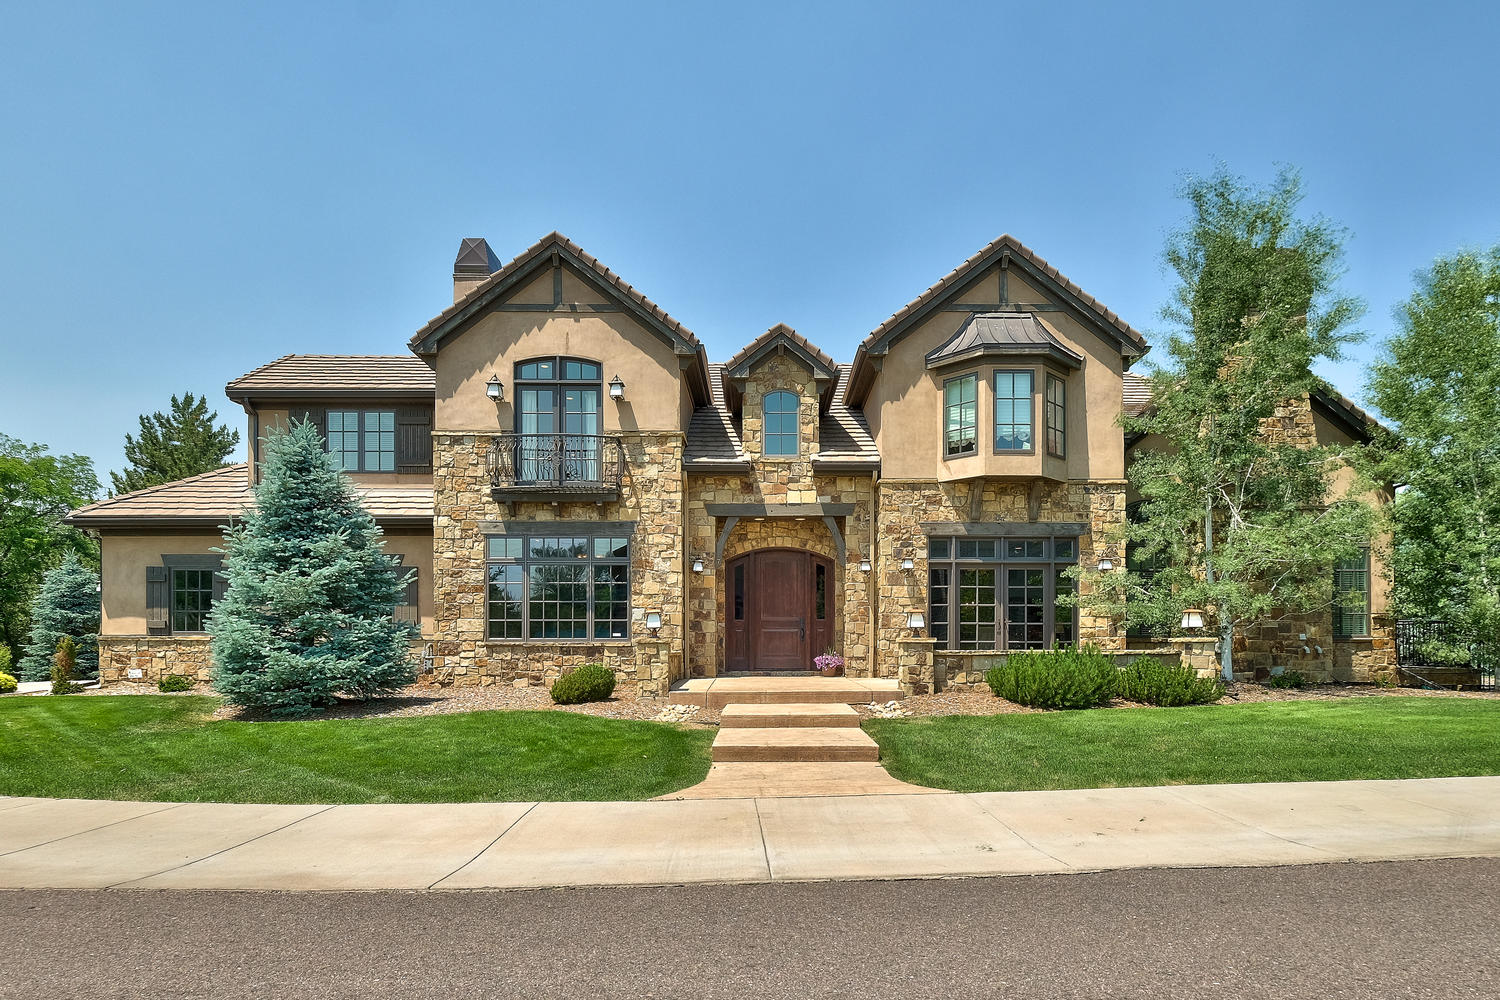 Single Family Home for Sale at Exceptional Two-Story Stone & Stucco Residence on Treed Acre 7 Layton Lane Cherry Hills Village, Colorado, 80013 United States